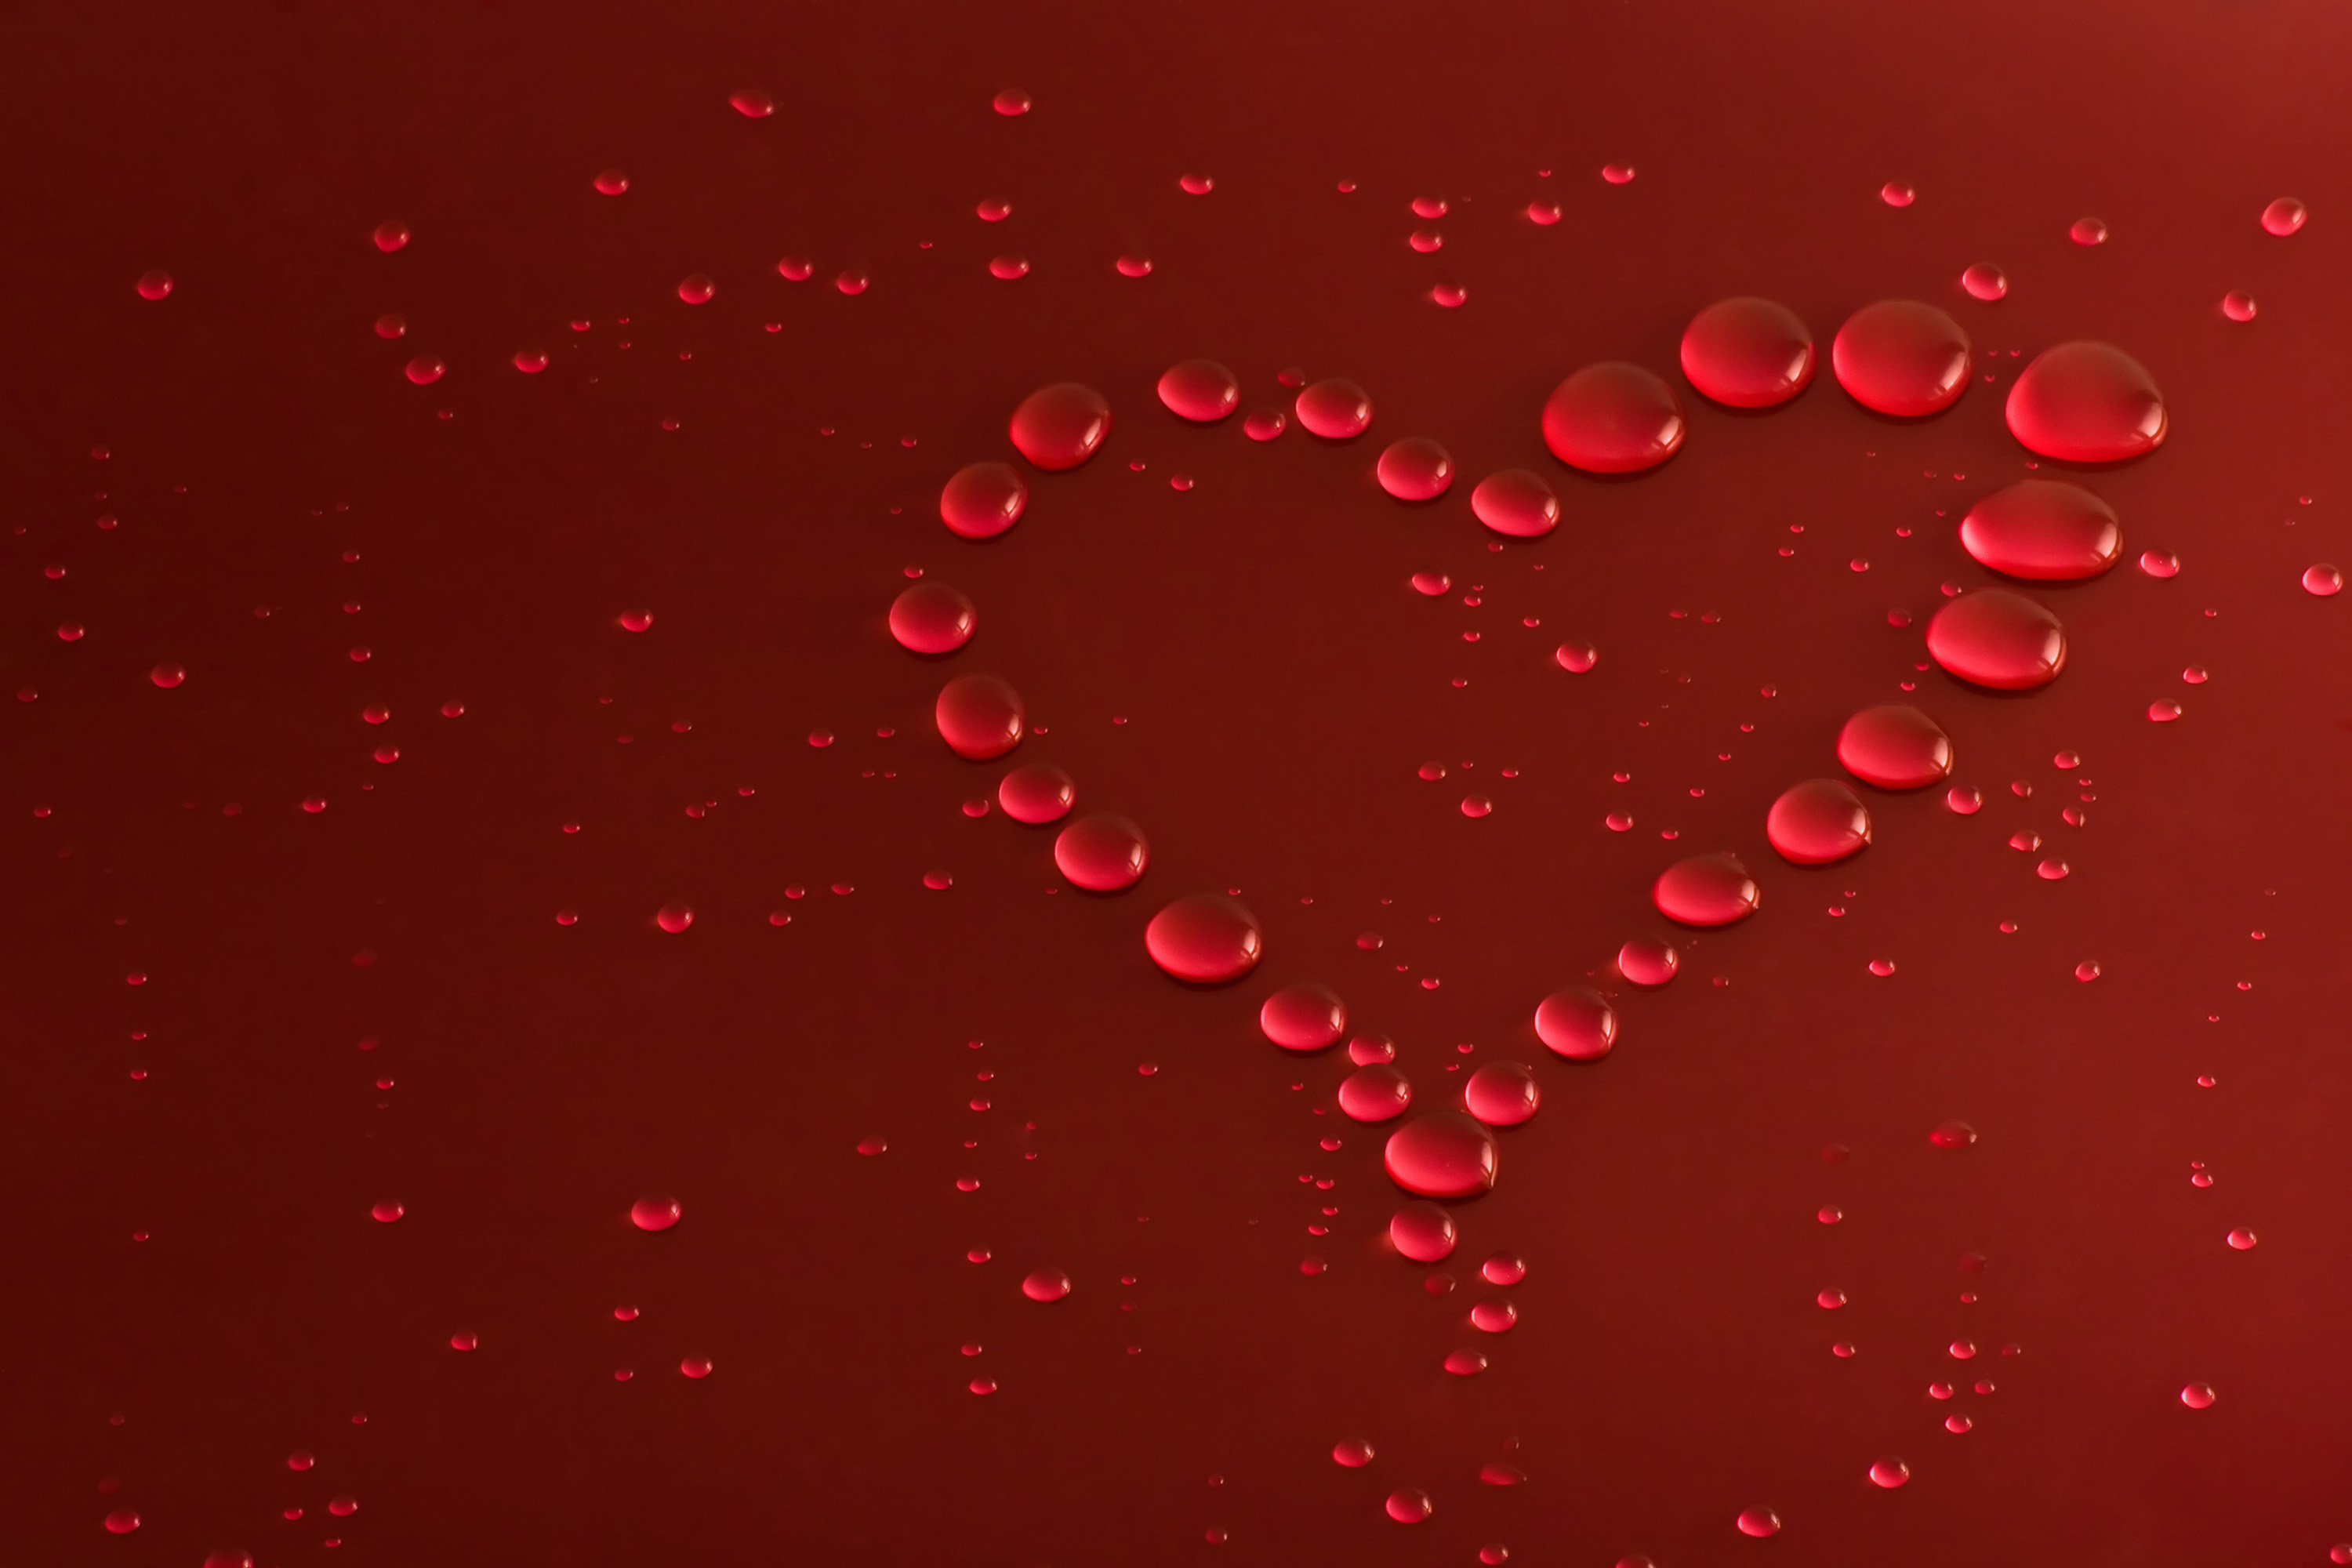 rate select rating give red love heart 1 5 give red love 3000x2000